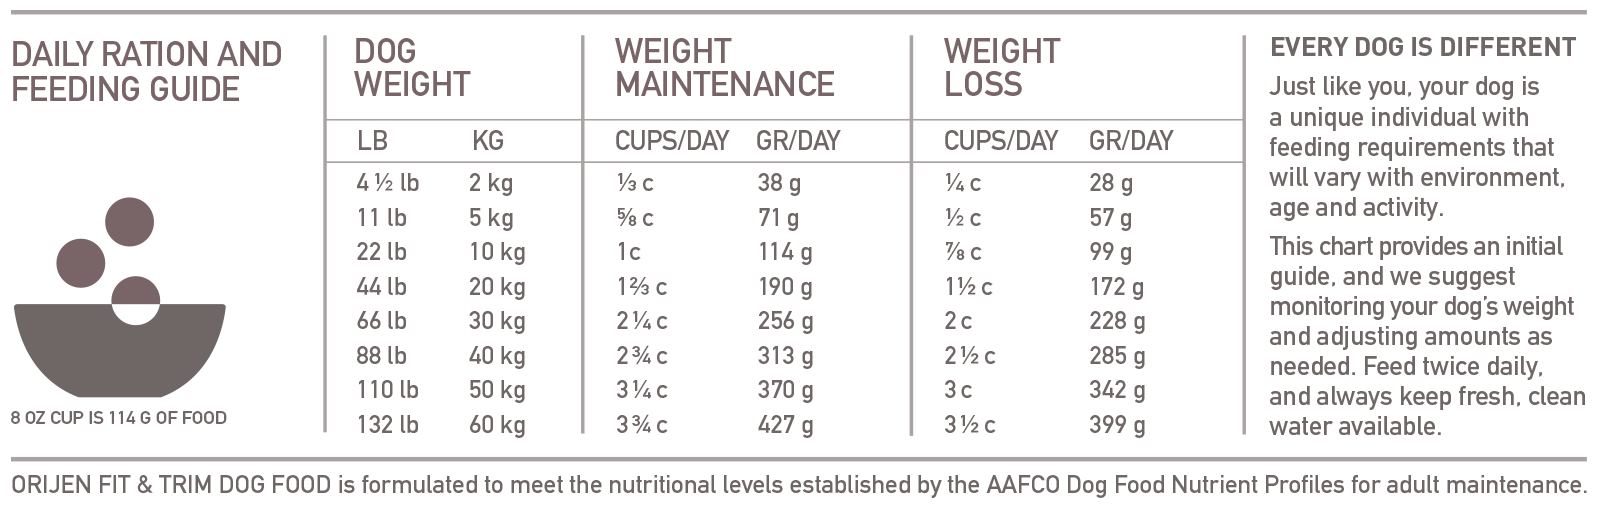 ORIJEN Fit and Trim Biologically Appropriate Dog Food Feeding Chart